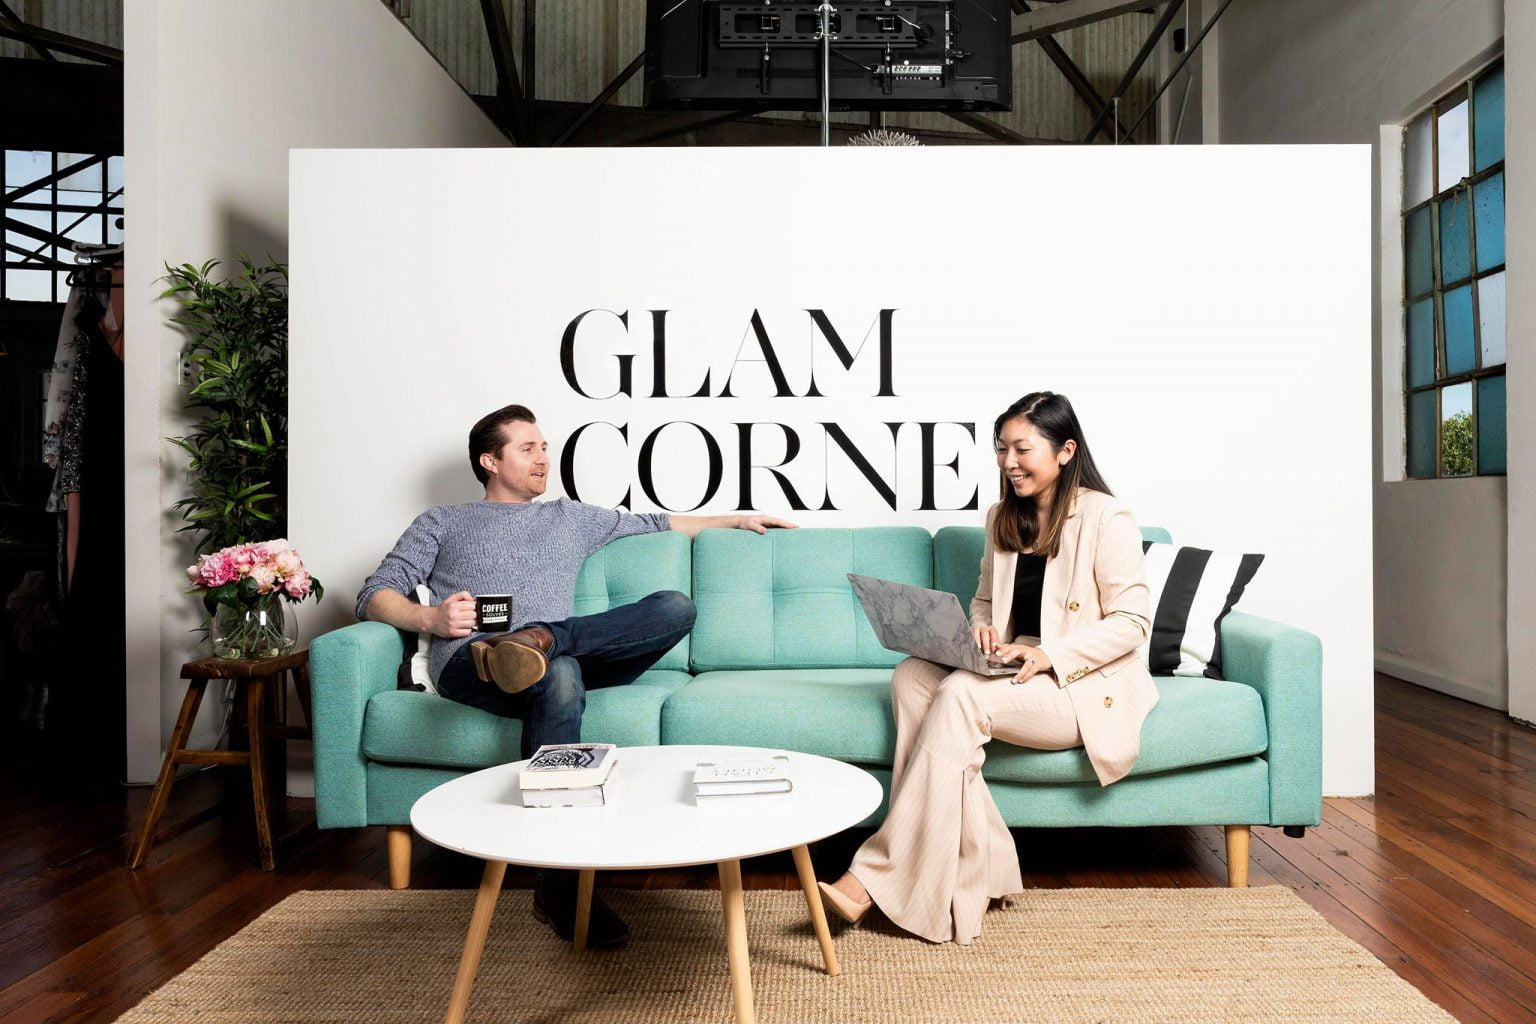 Co-founders of GlamCorner, Dean and Audrey Jones. Behind them, a large banner with the logo for GlamCorner is shown.